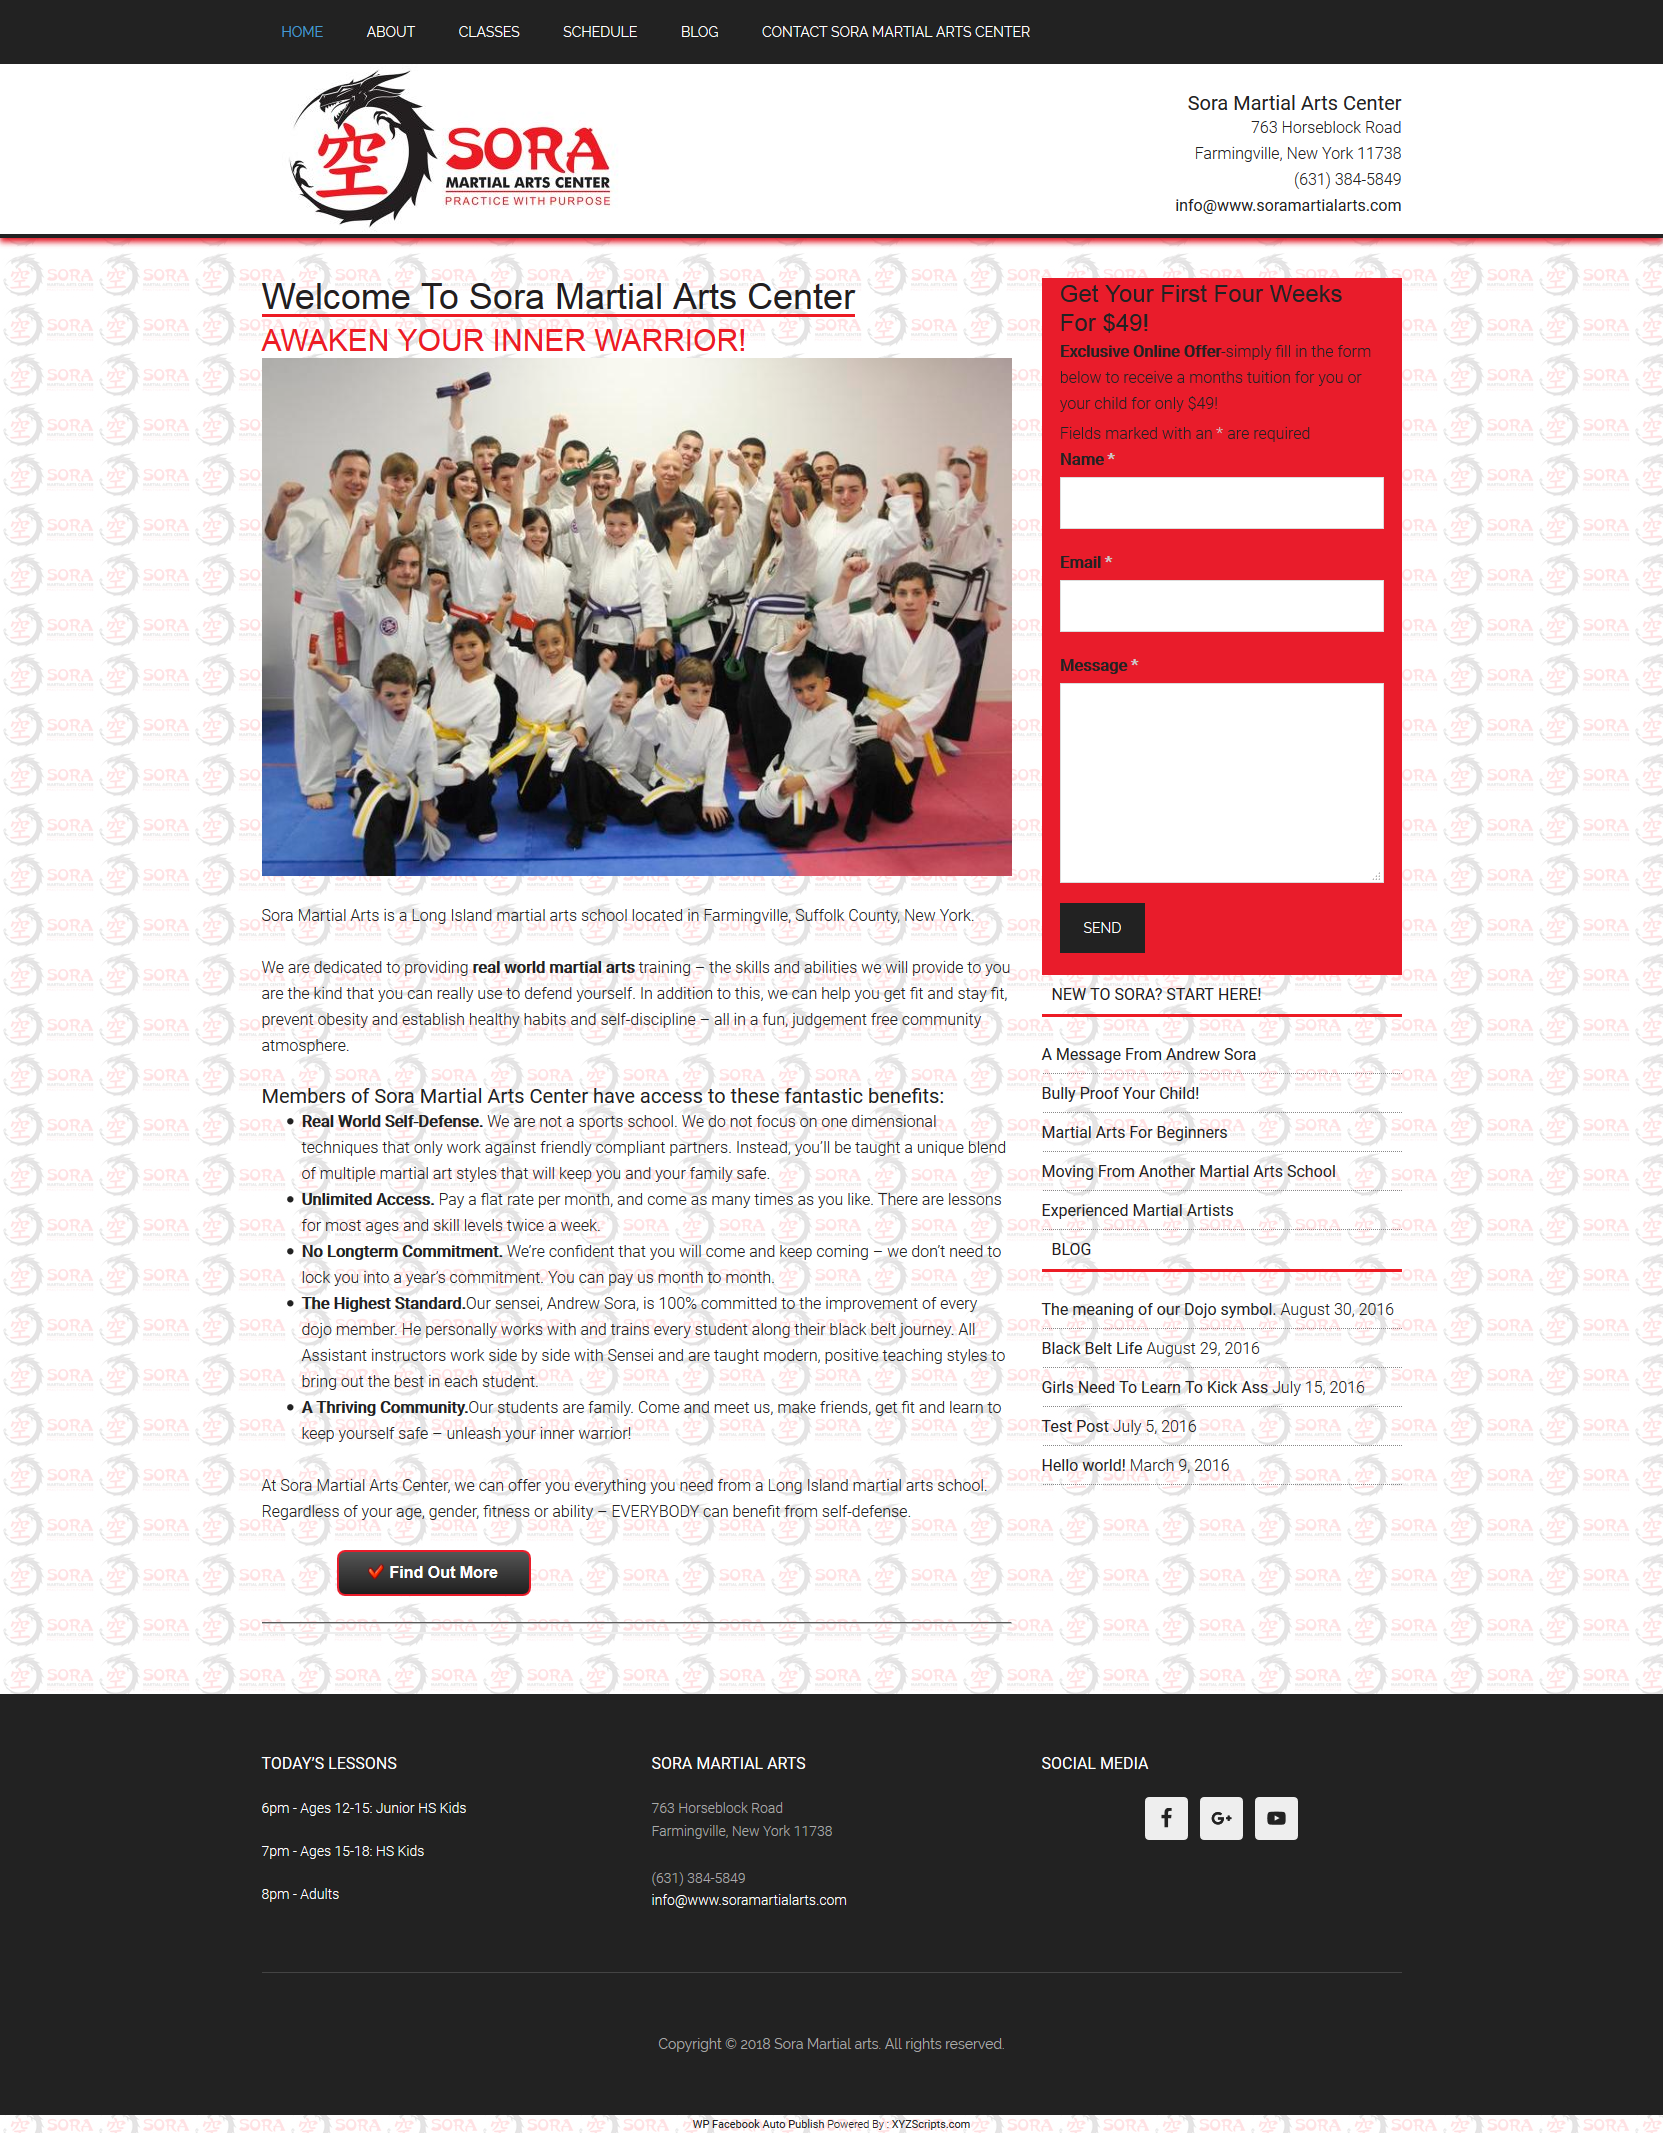 Sora Martial Arts website built by Suffolk County Webmasters